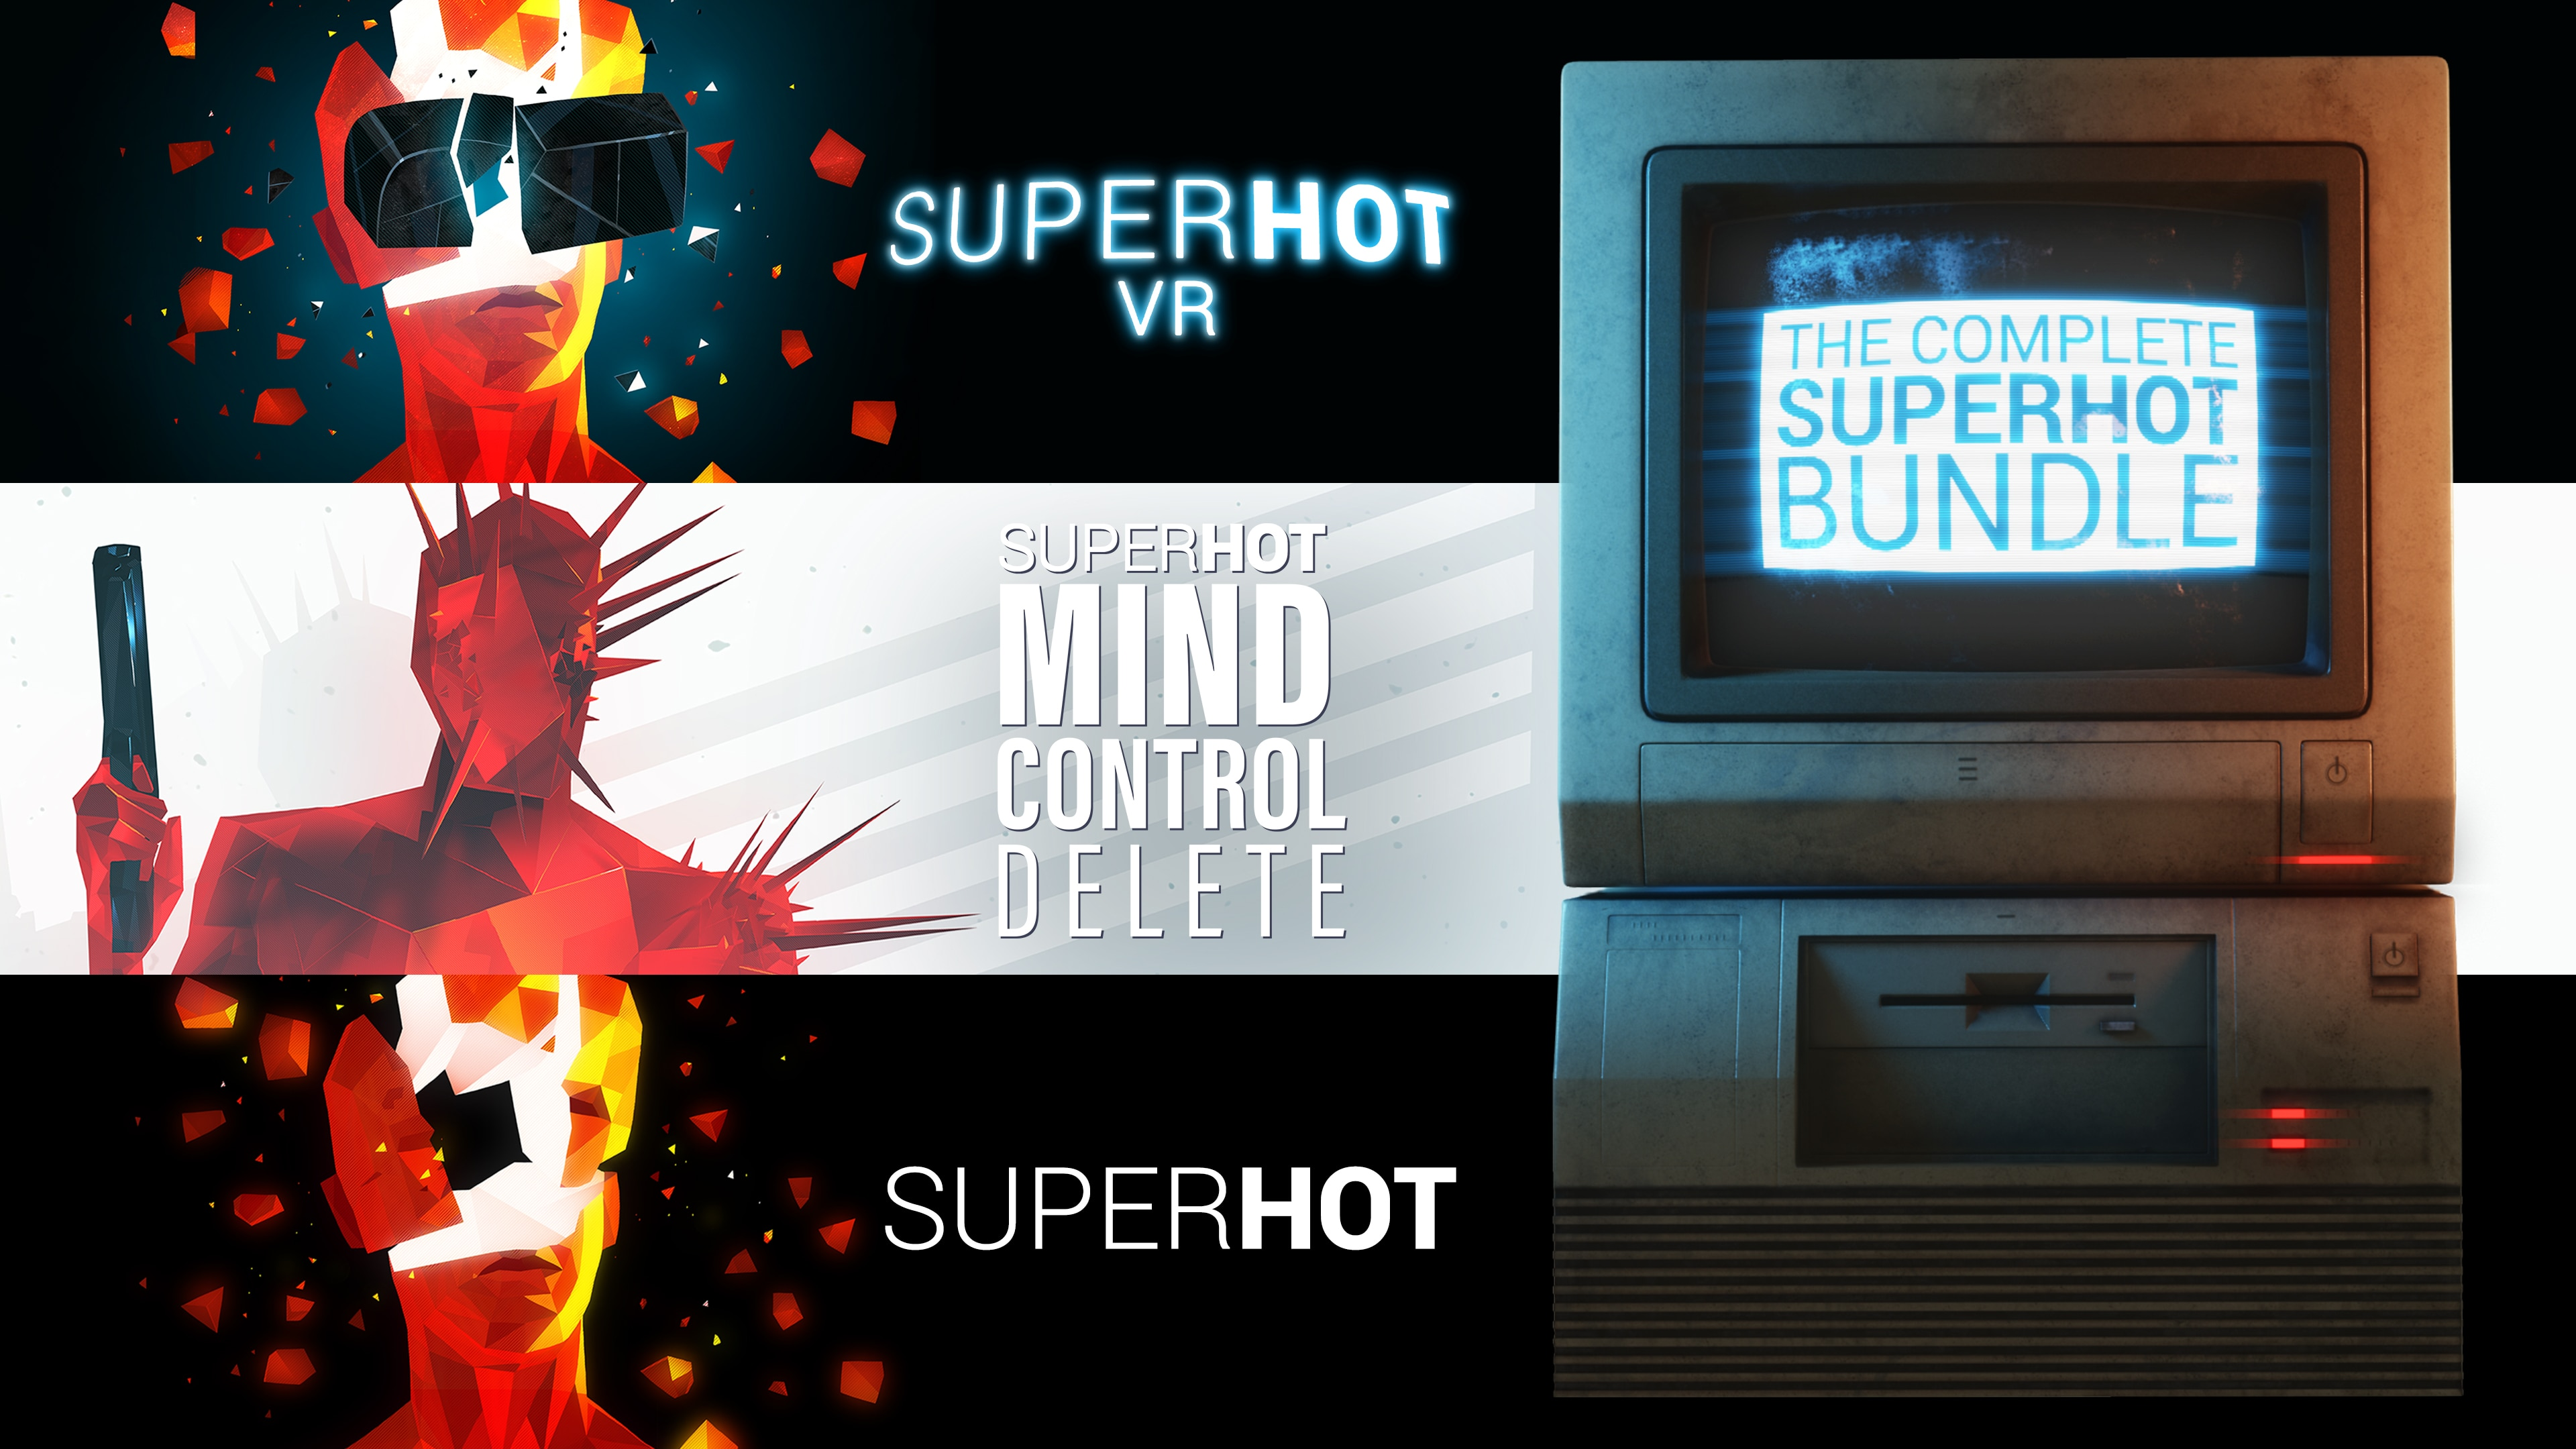 THE COMPLETE SUPERHOT BUNDLE